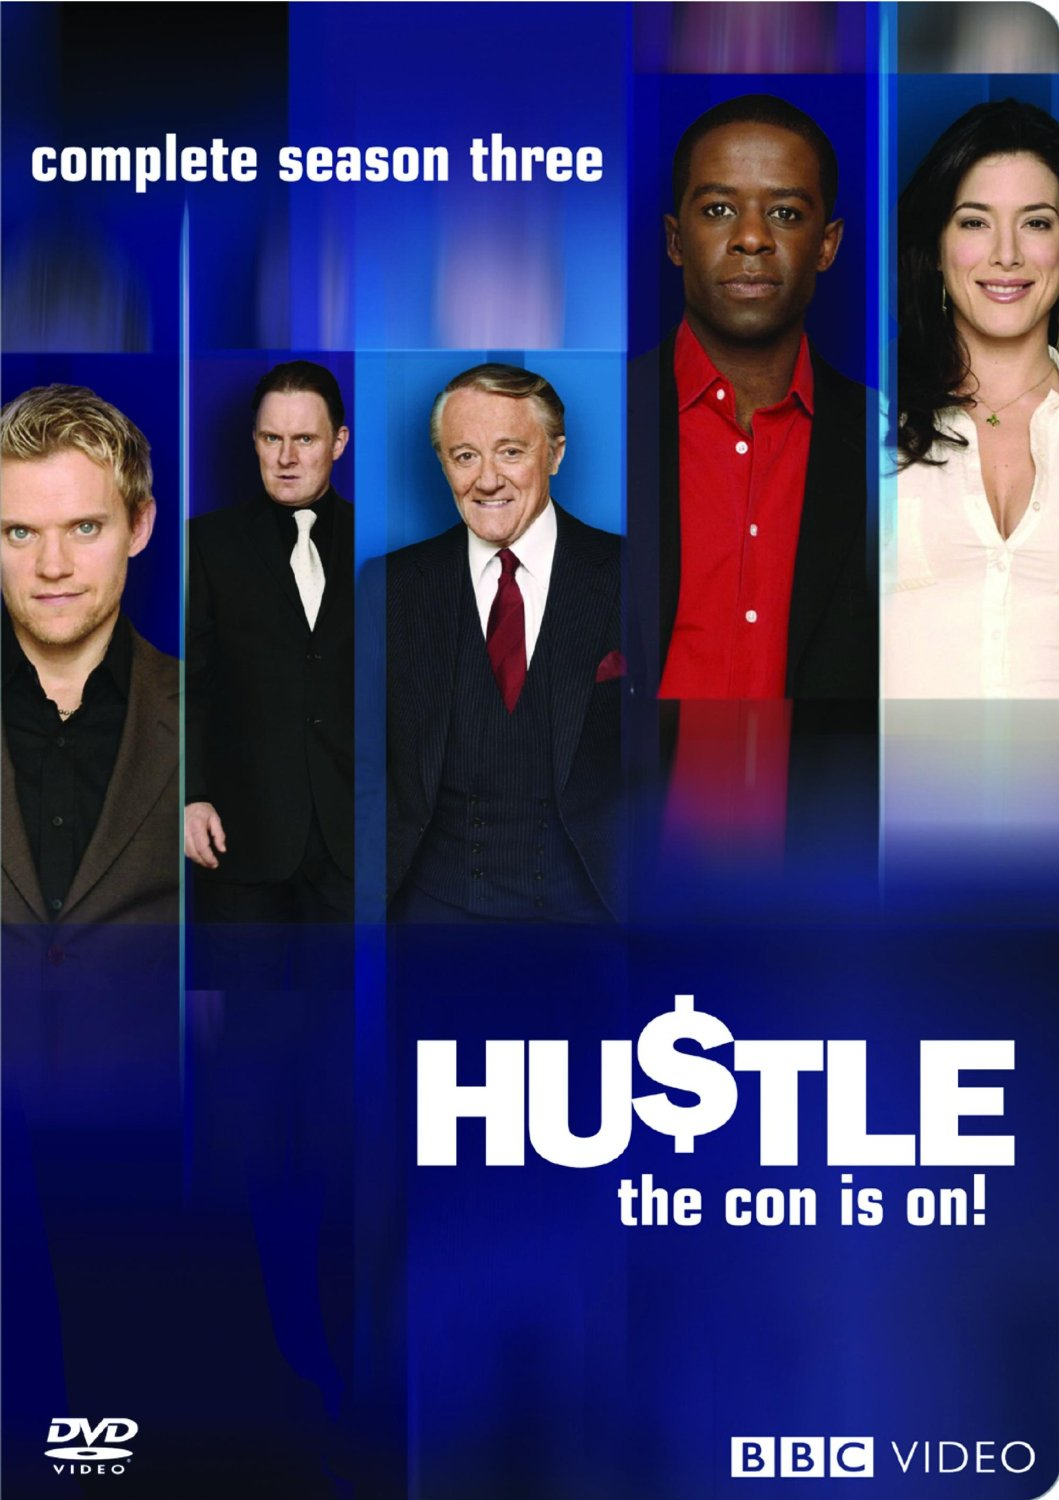 Hustle: Season 3